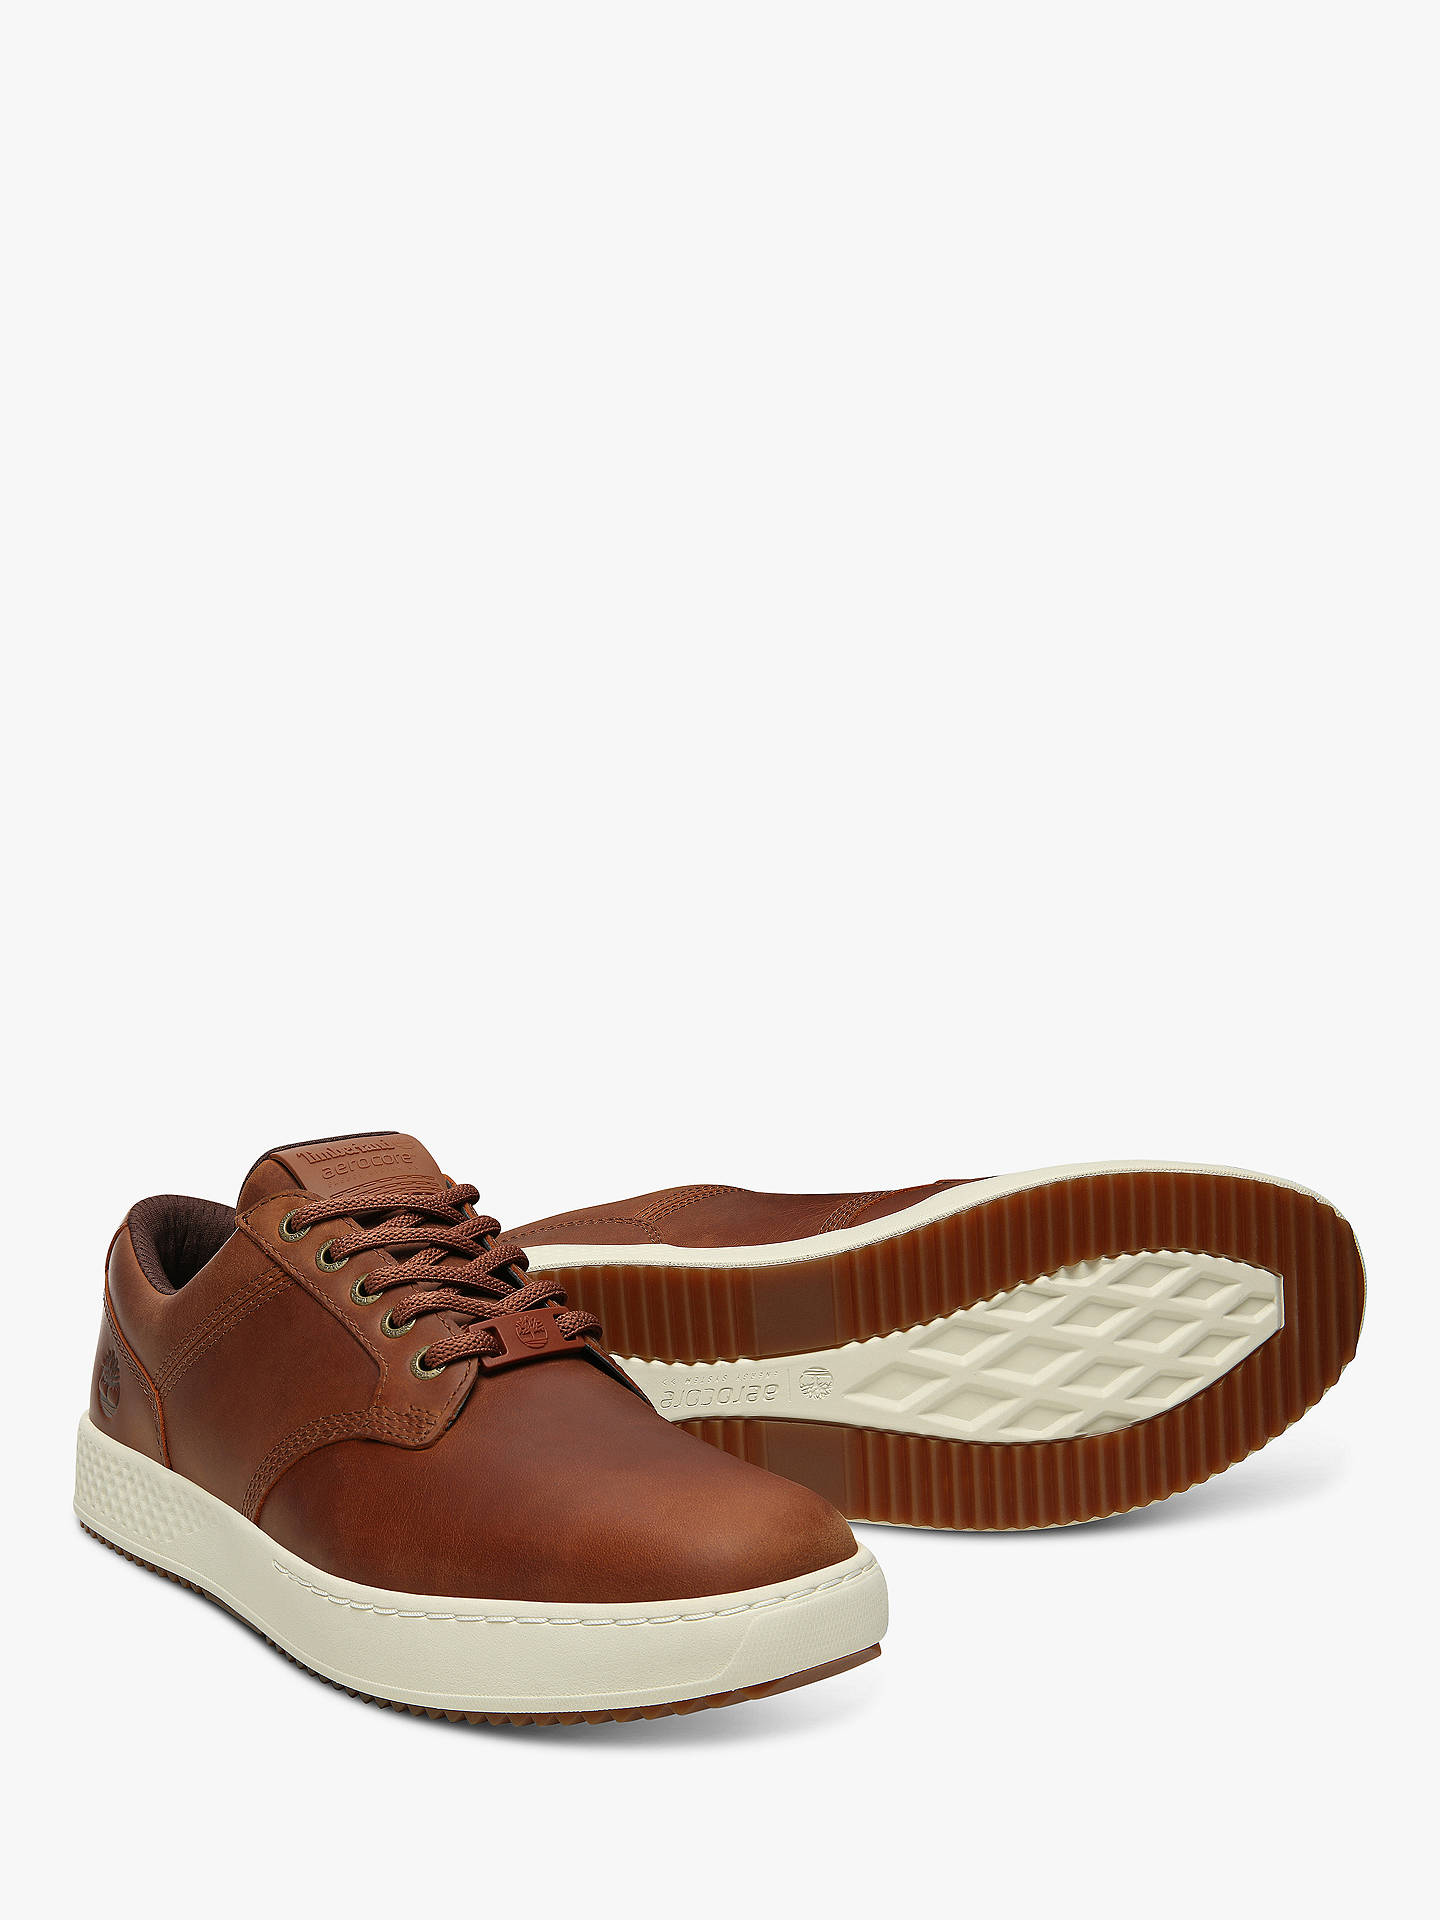 4b64ccd7752 Buy Timberland City Roam Leather Oxford Shoes